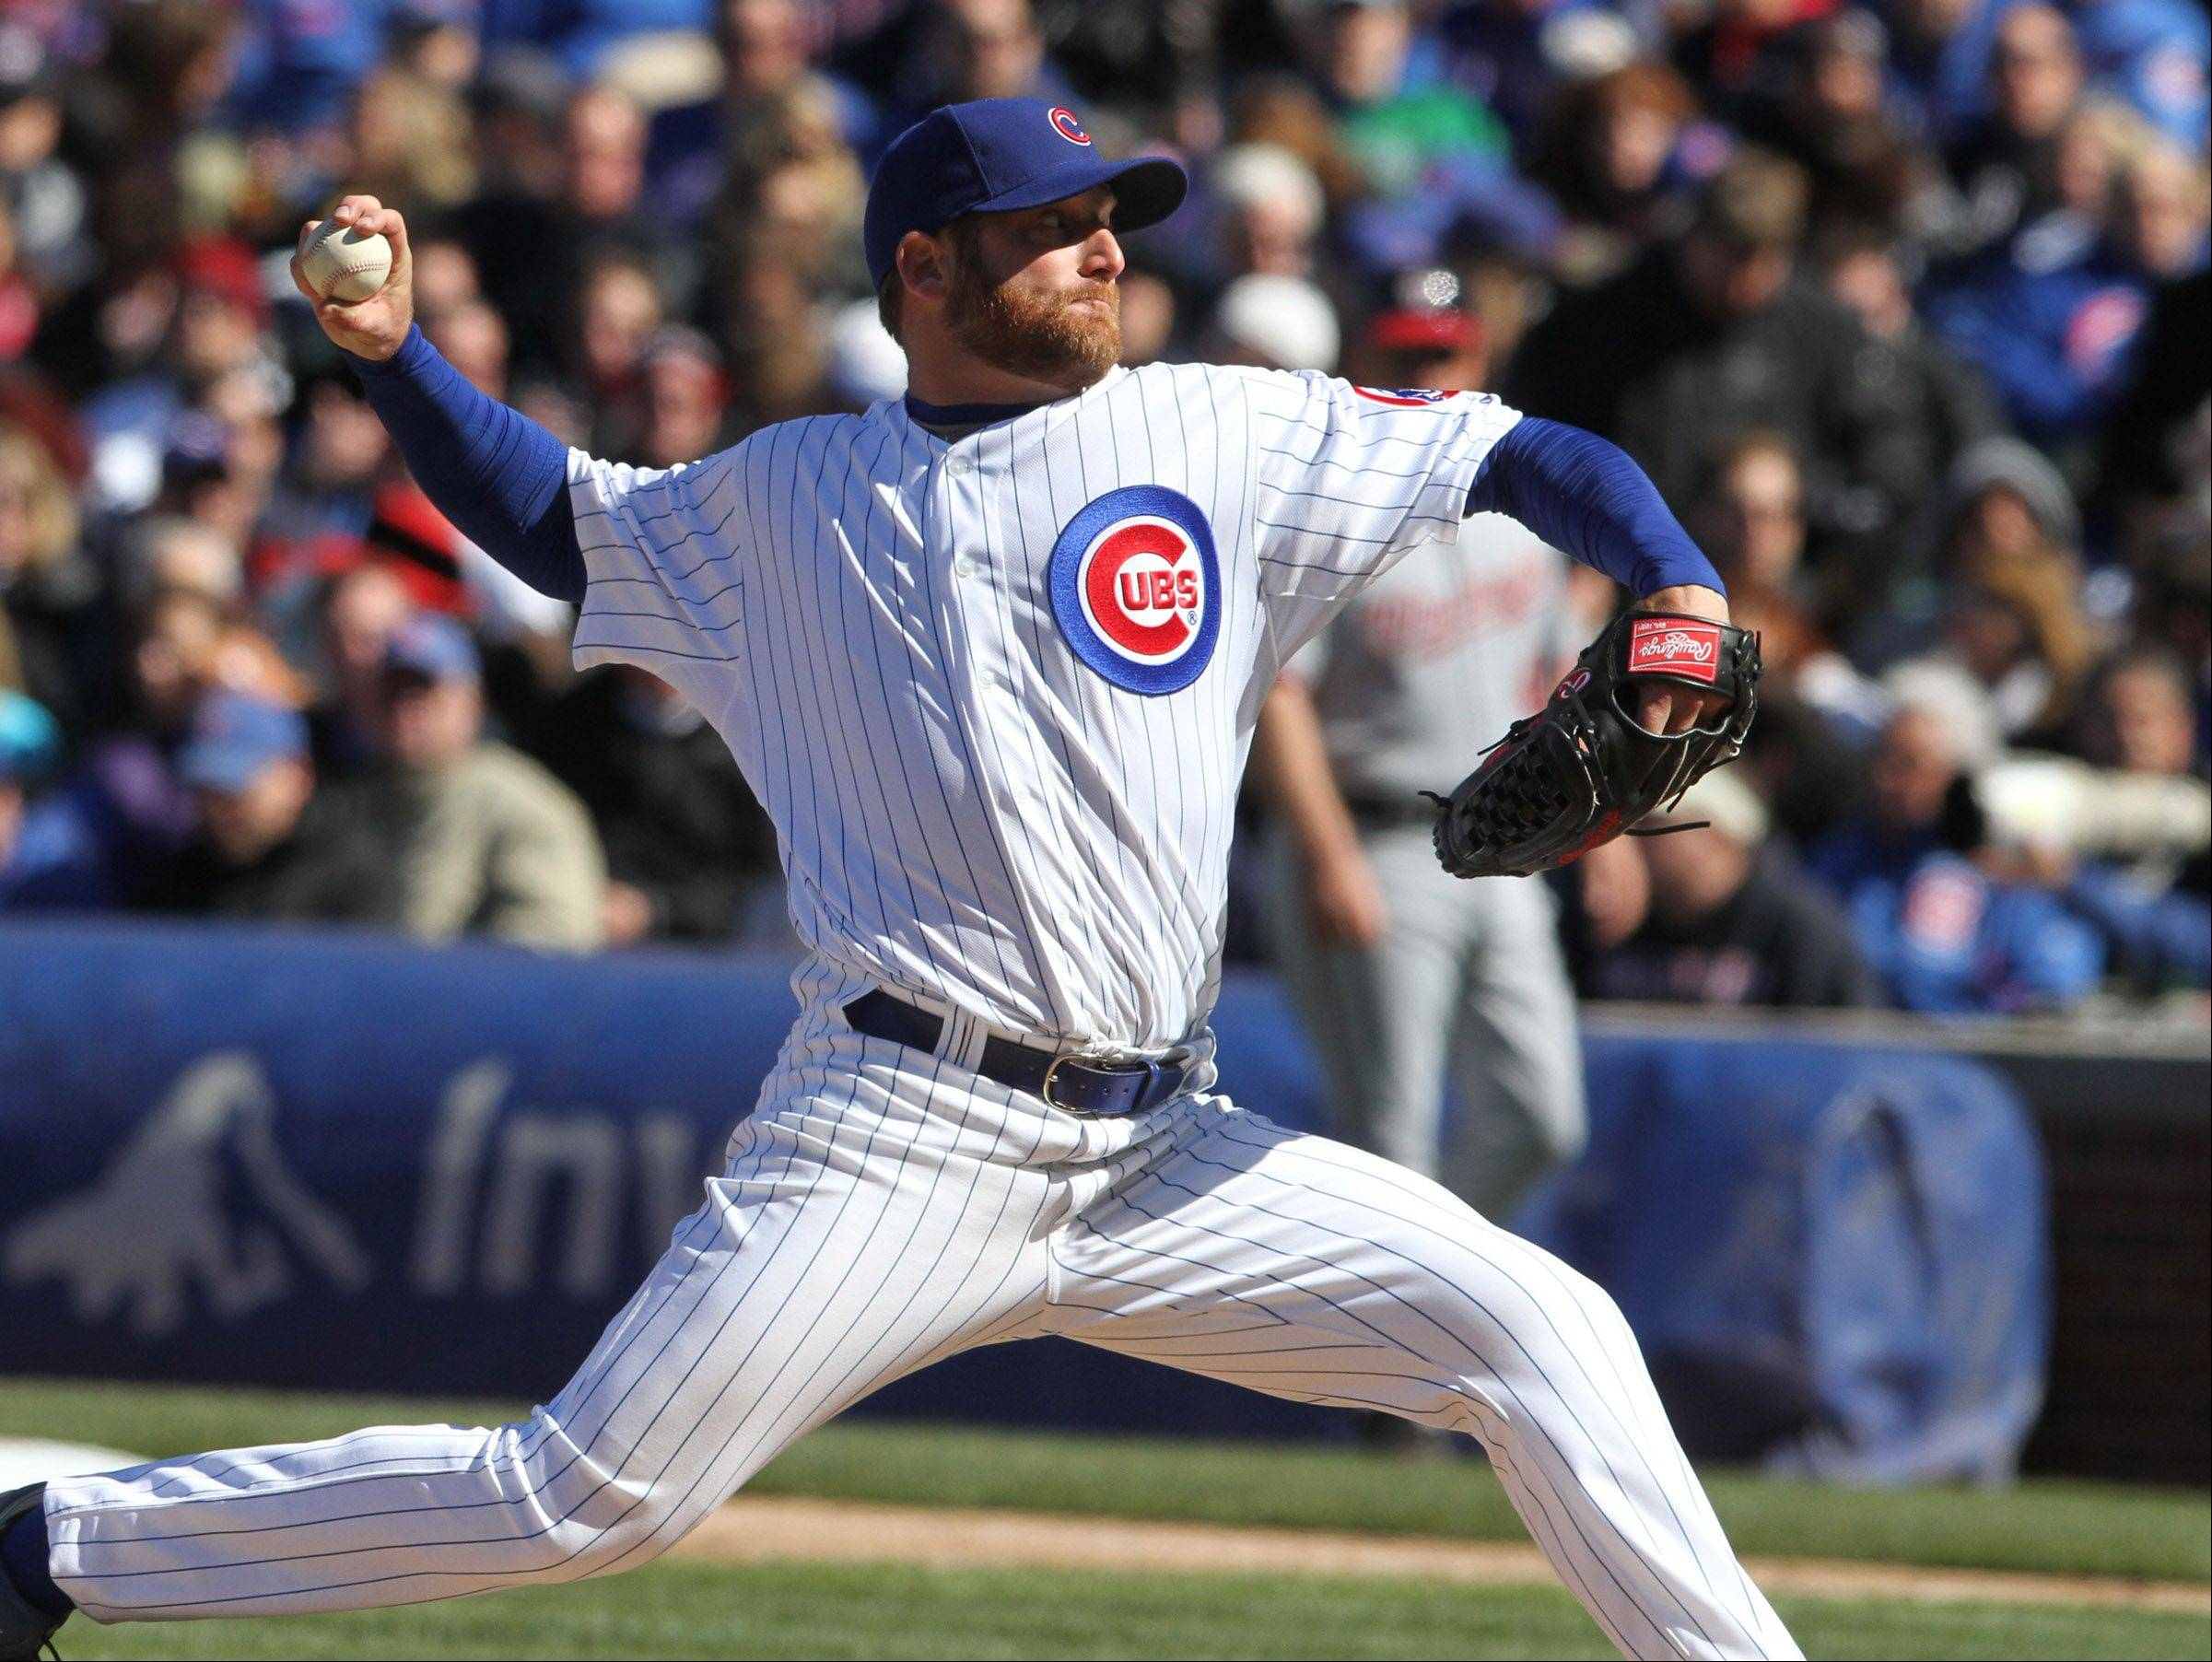 Cubs starting pitcher Ryan Dempster only gave up 2 hits Thursday and struck out 10 but Washington rallied for a 2-1 victory on Opening Day at Wrigley Field.